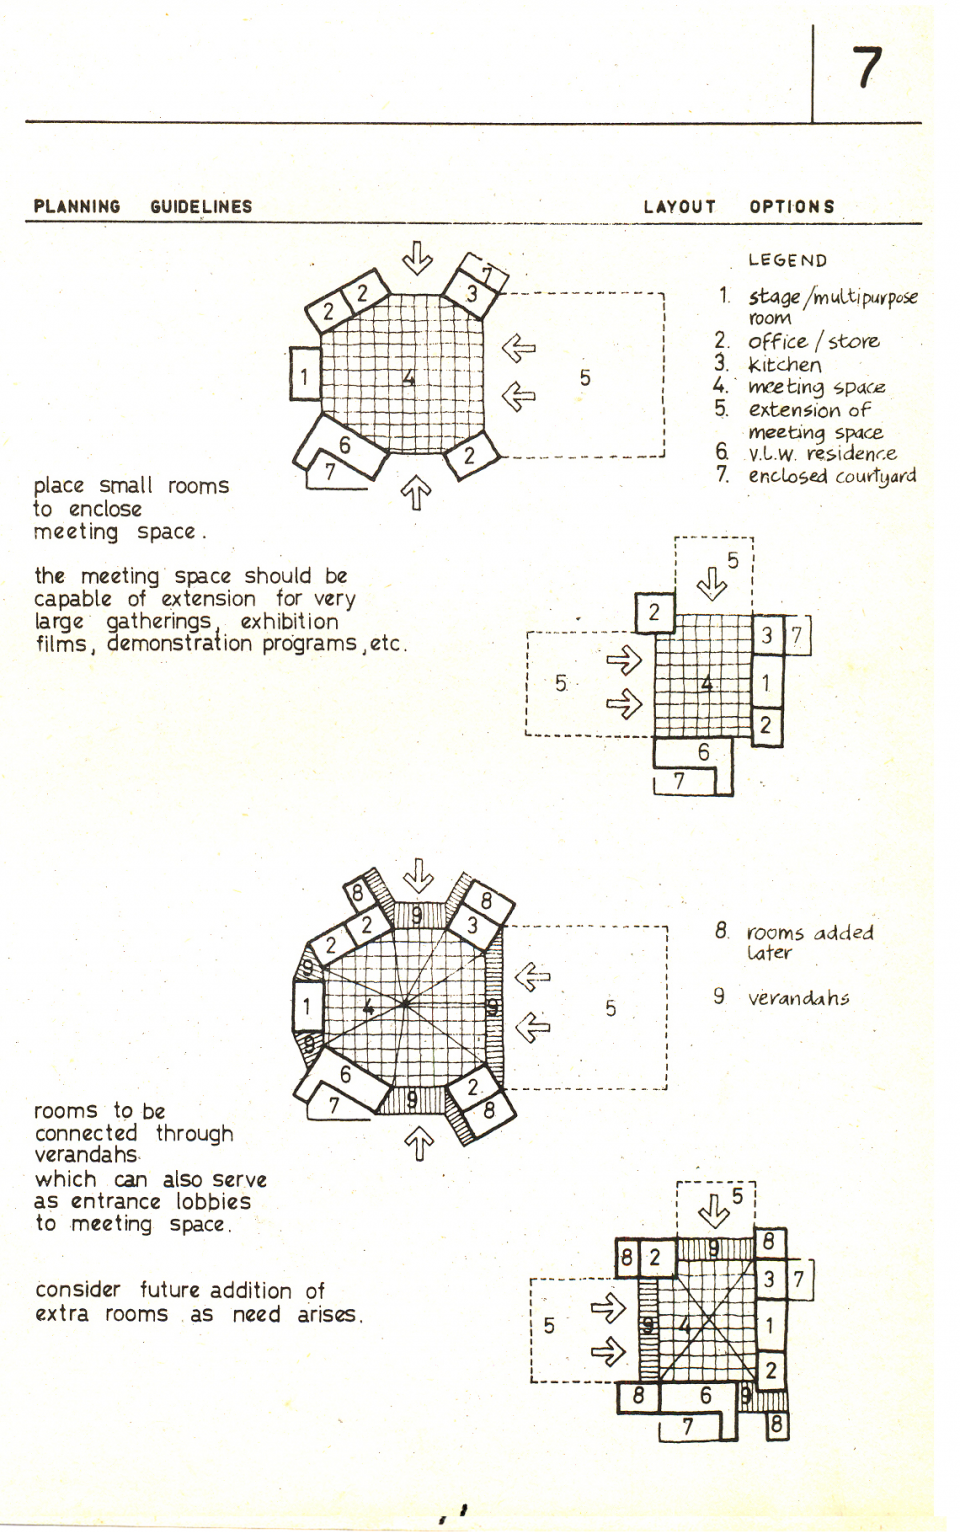 P. 07 Planning Guidelines